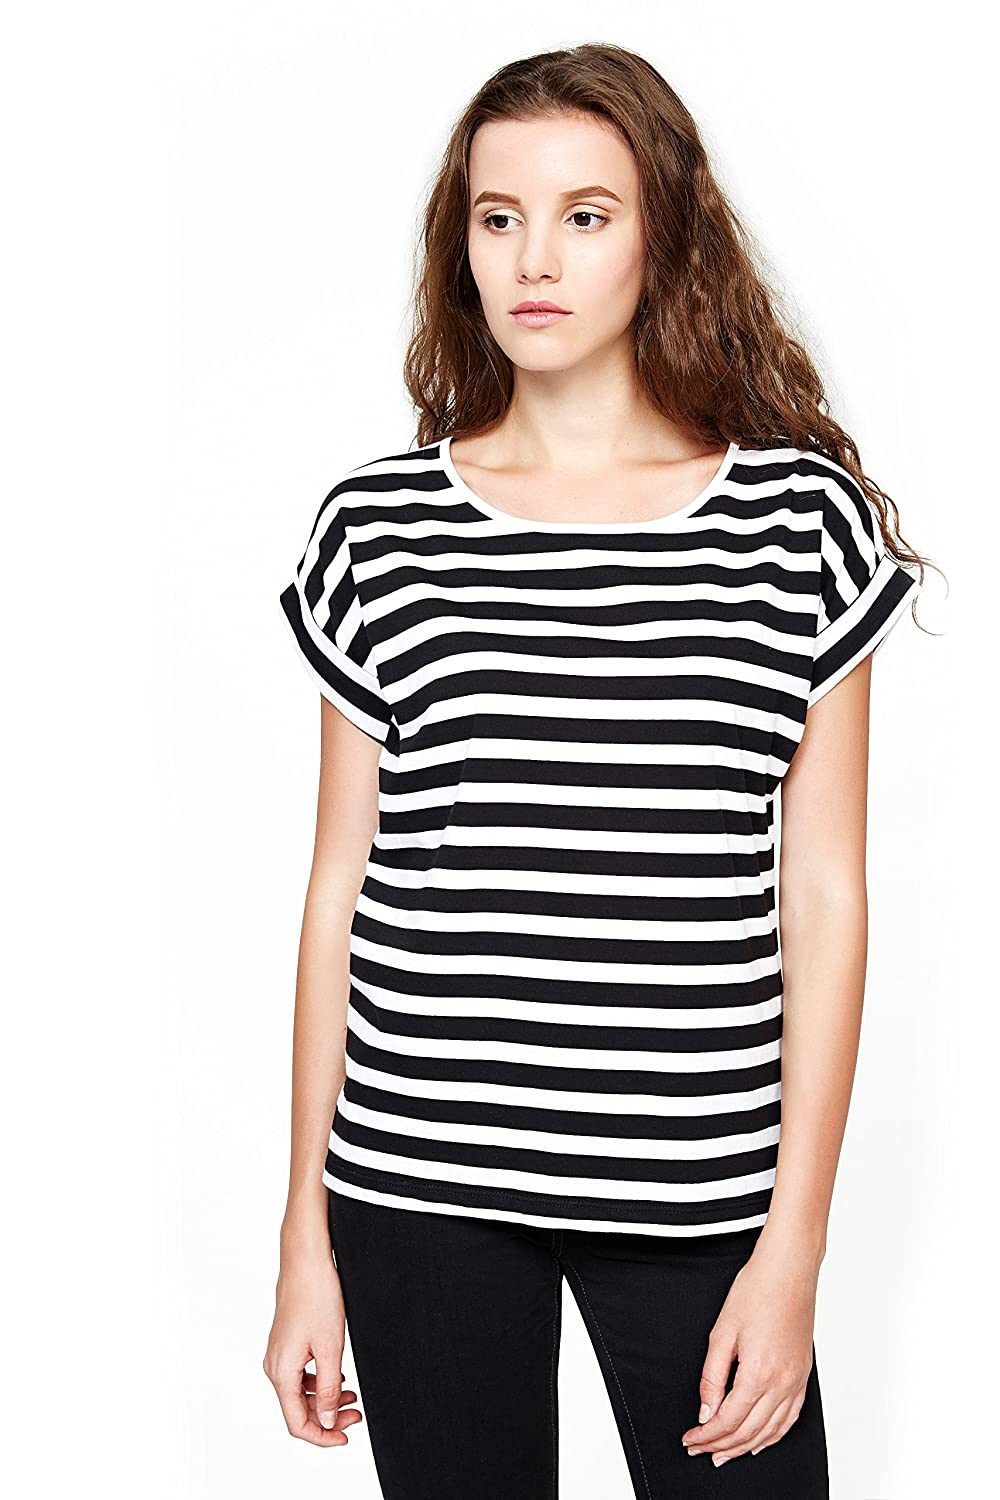 8457b495a5ad YOUMECLO Women Round Neck Casual Loose Striped Shirt Black and White Cotton Short  Sleeve Tee Blouse at Amazon Women s Clothing store